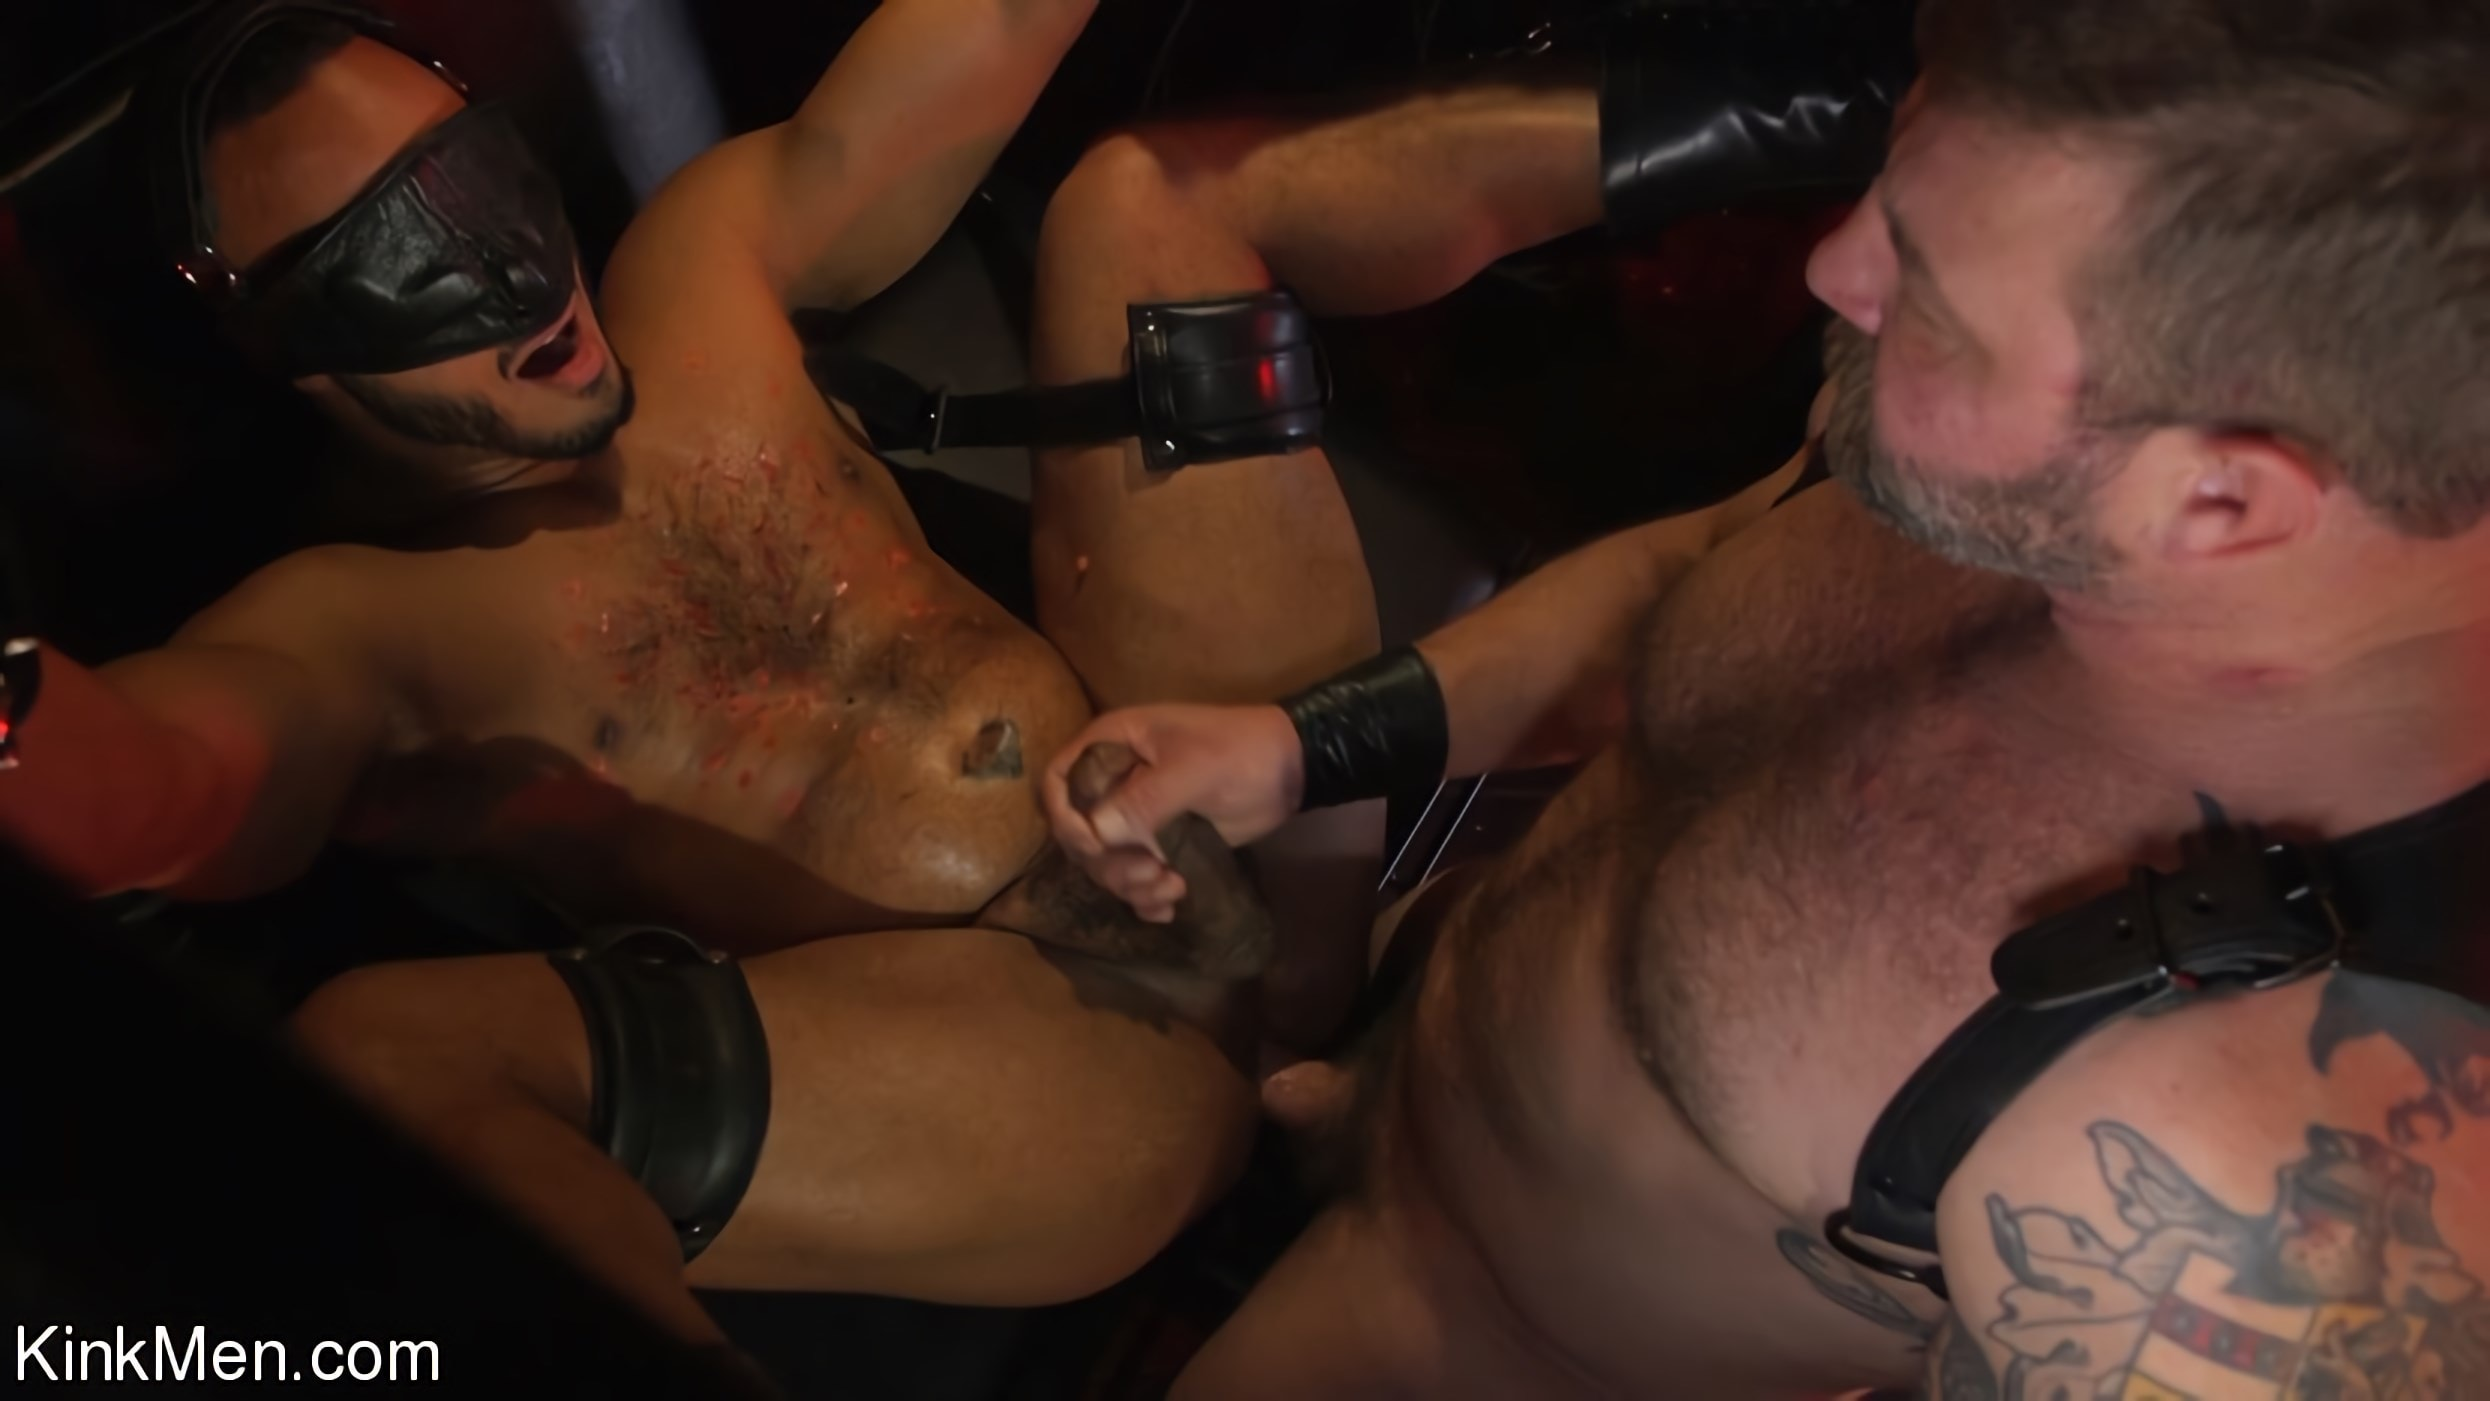 Colby Jansen - Colby Jansen and Dillon Diaz: Stud Fucker | Picture (15)